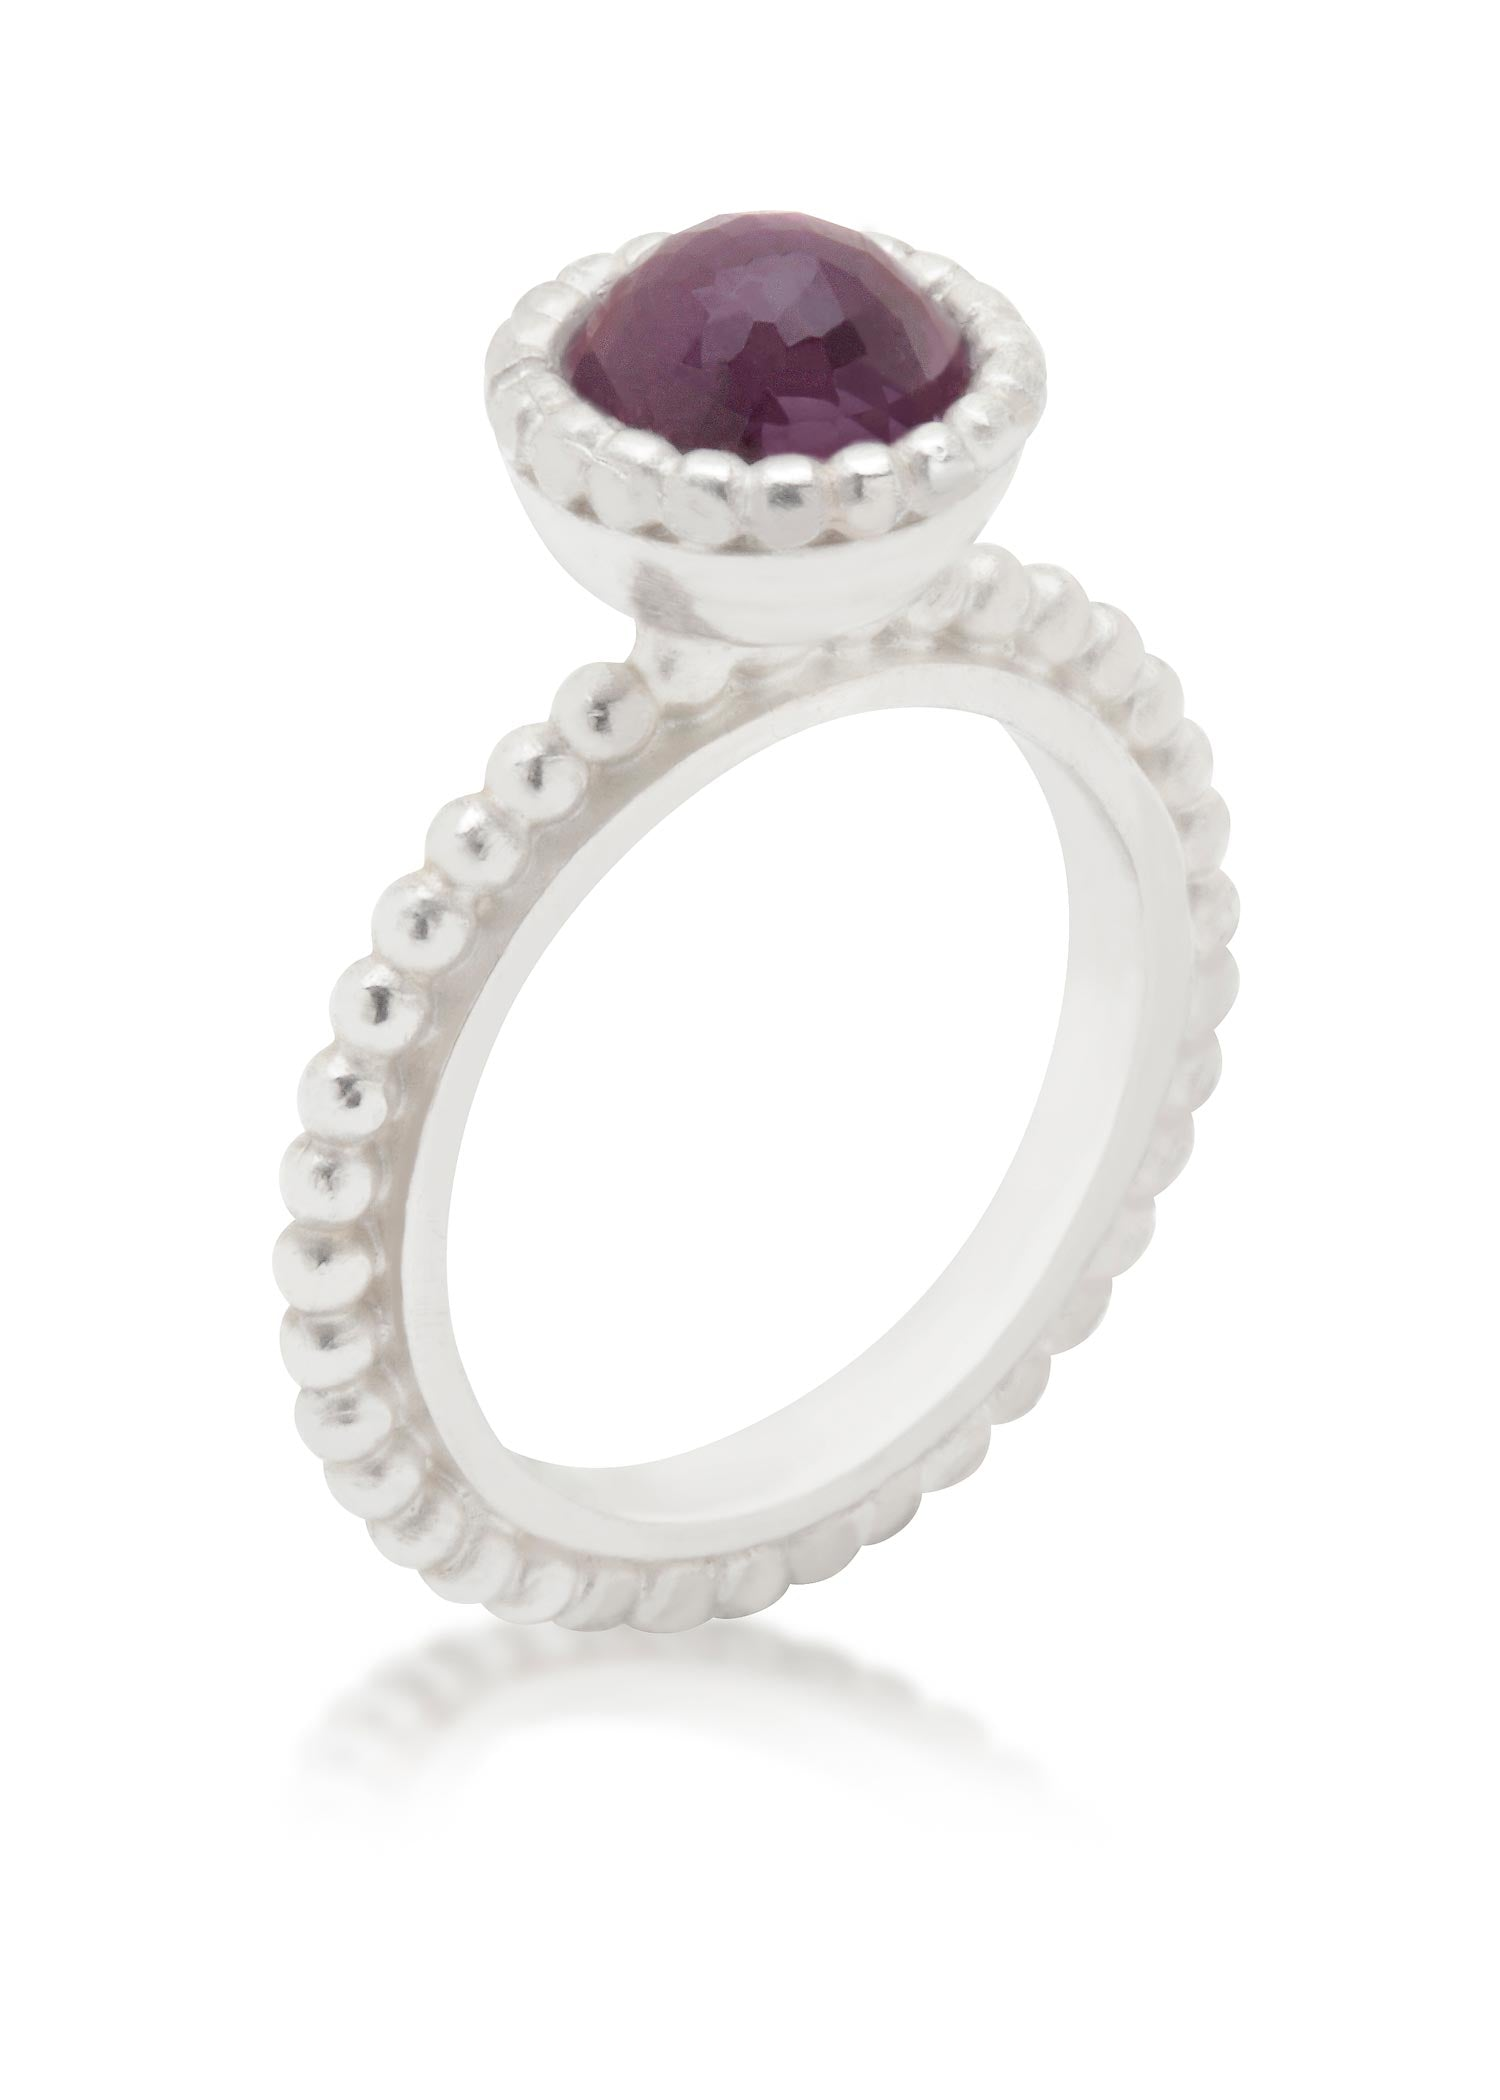 Small Byzantine silver ring with amethyst